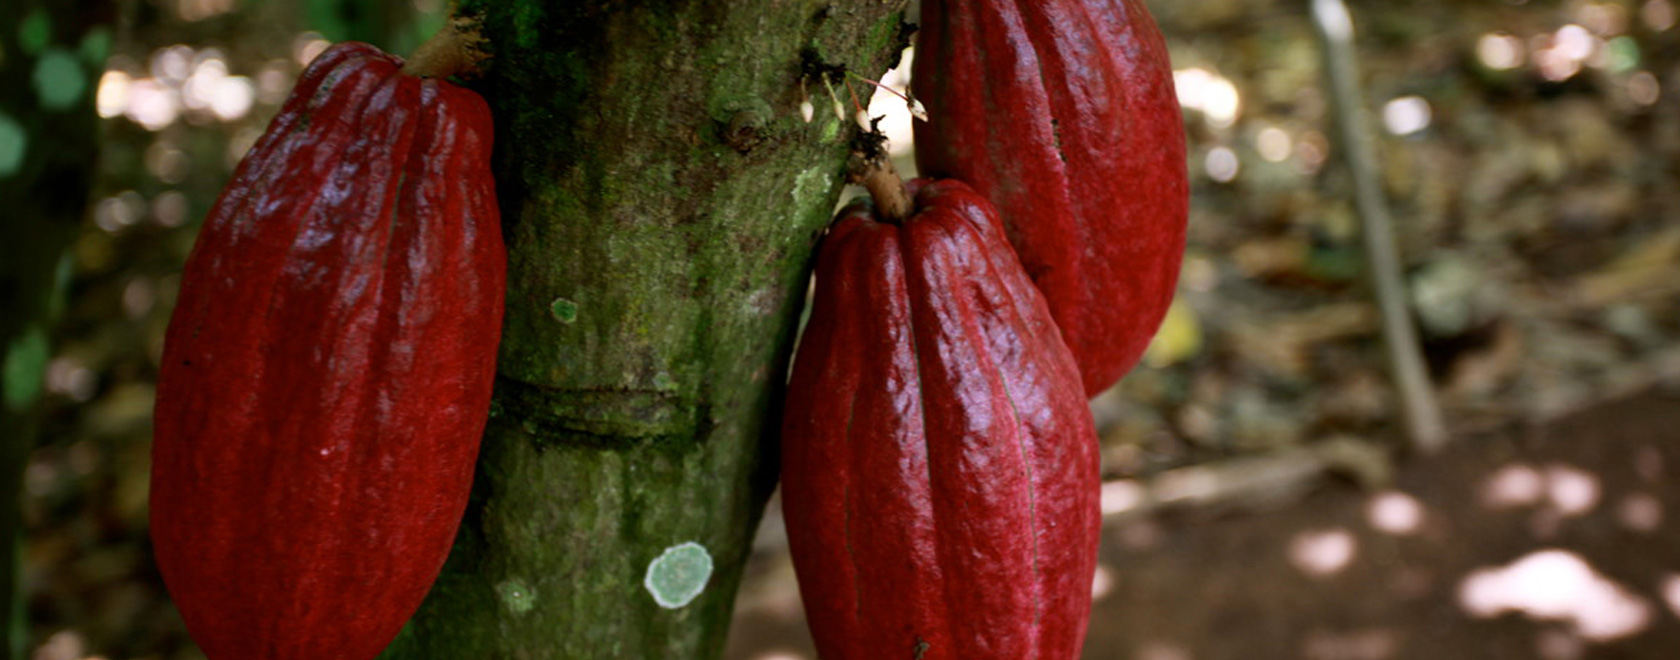 Three ripe red cocoa pods hanging from a tree, Olam.